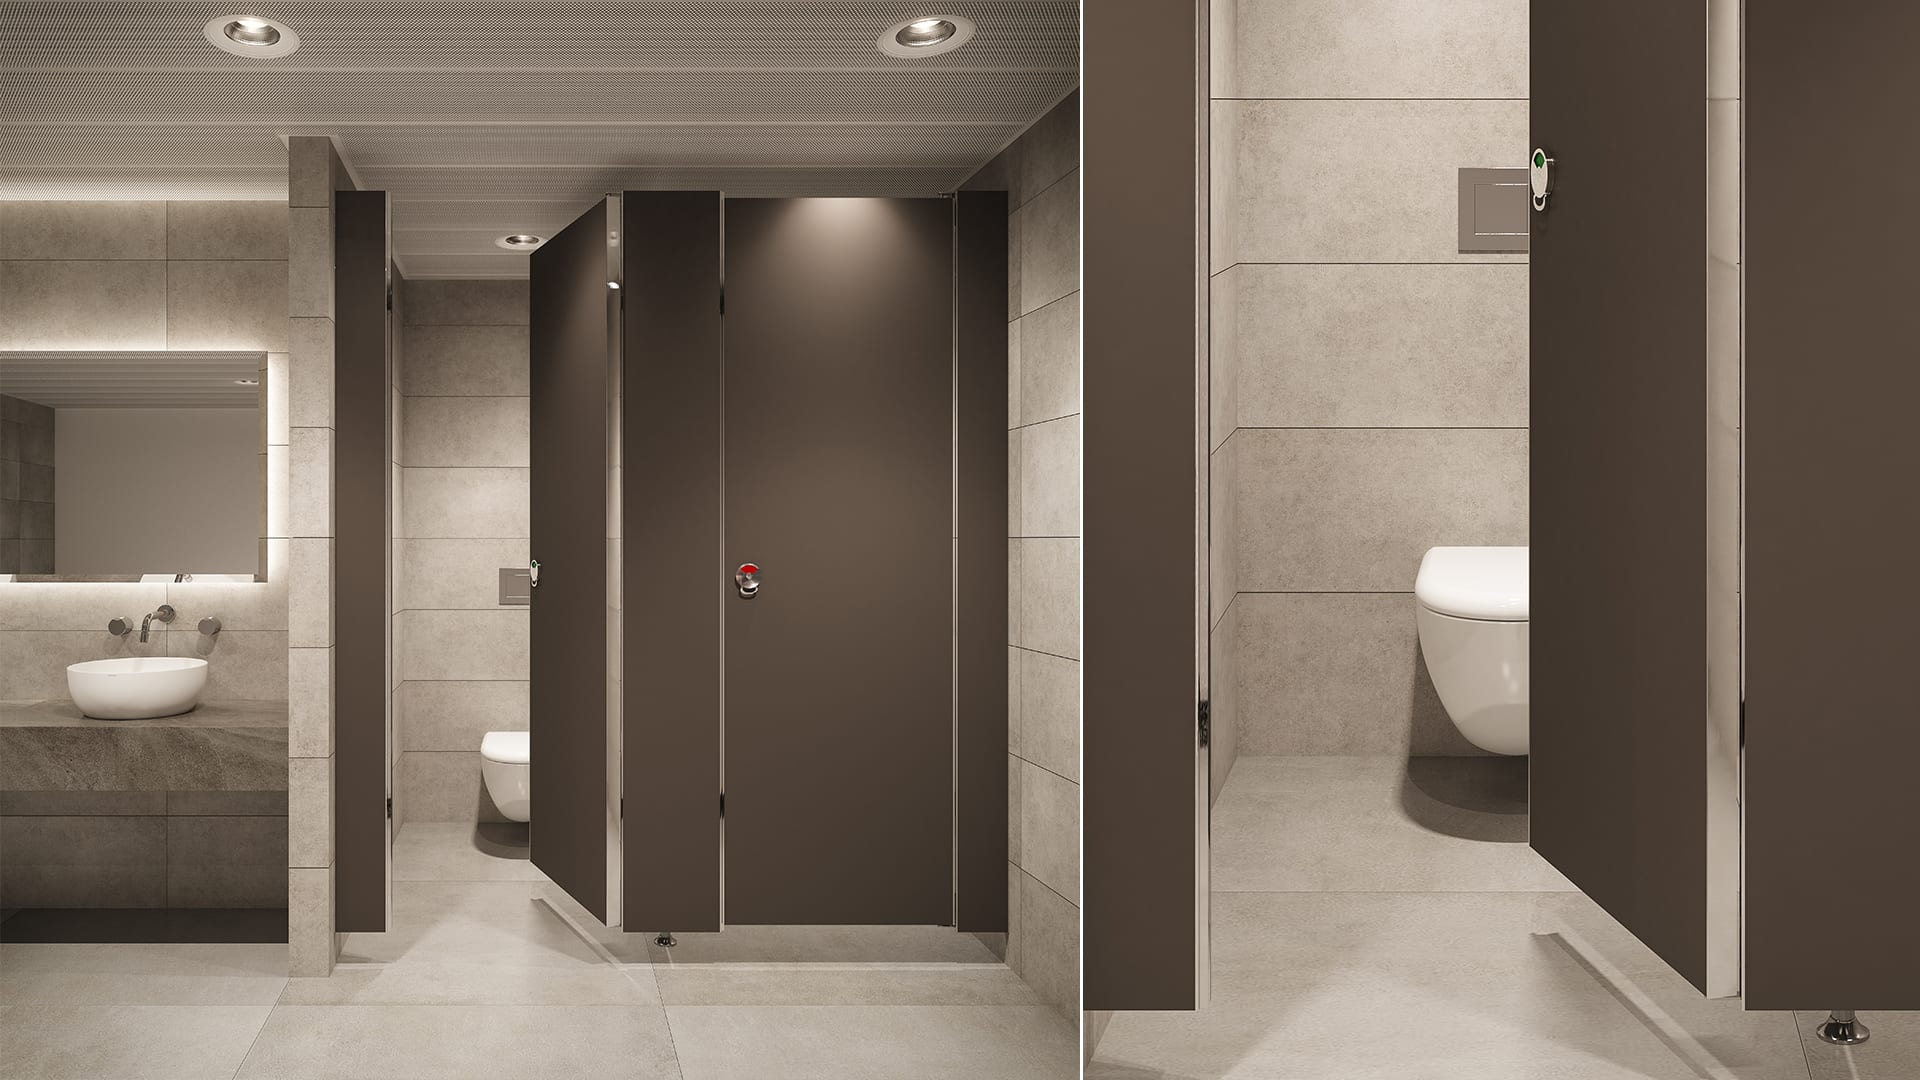 Maayan-Golan_Architectural-Visualization_product-visualization_ Bathroom-partition-units_ company-Ambin-Systems_09